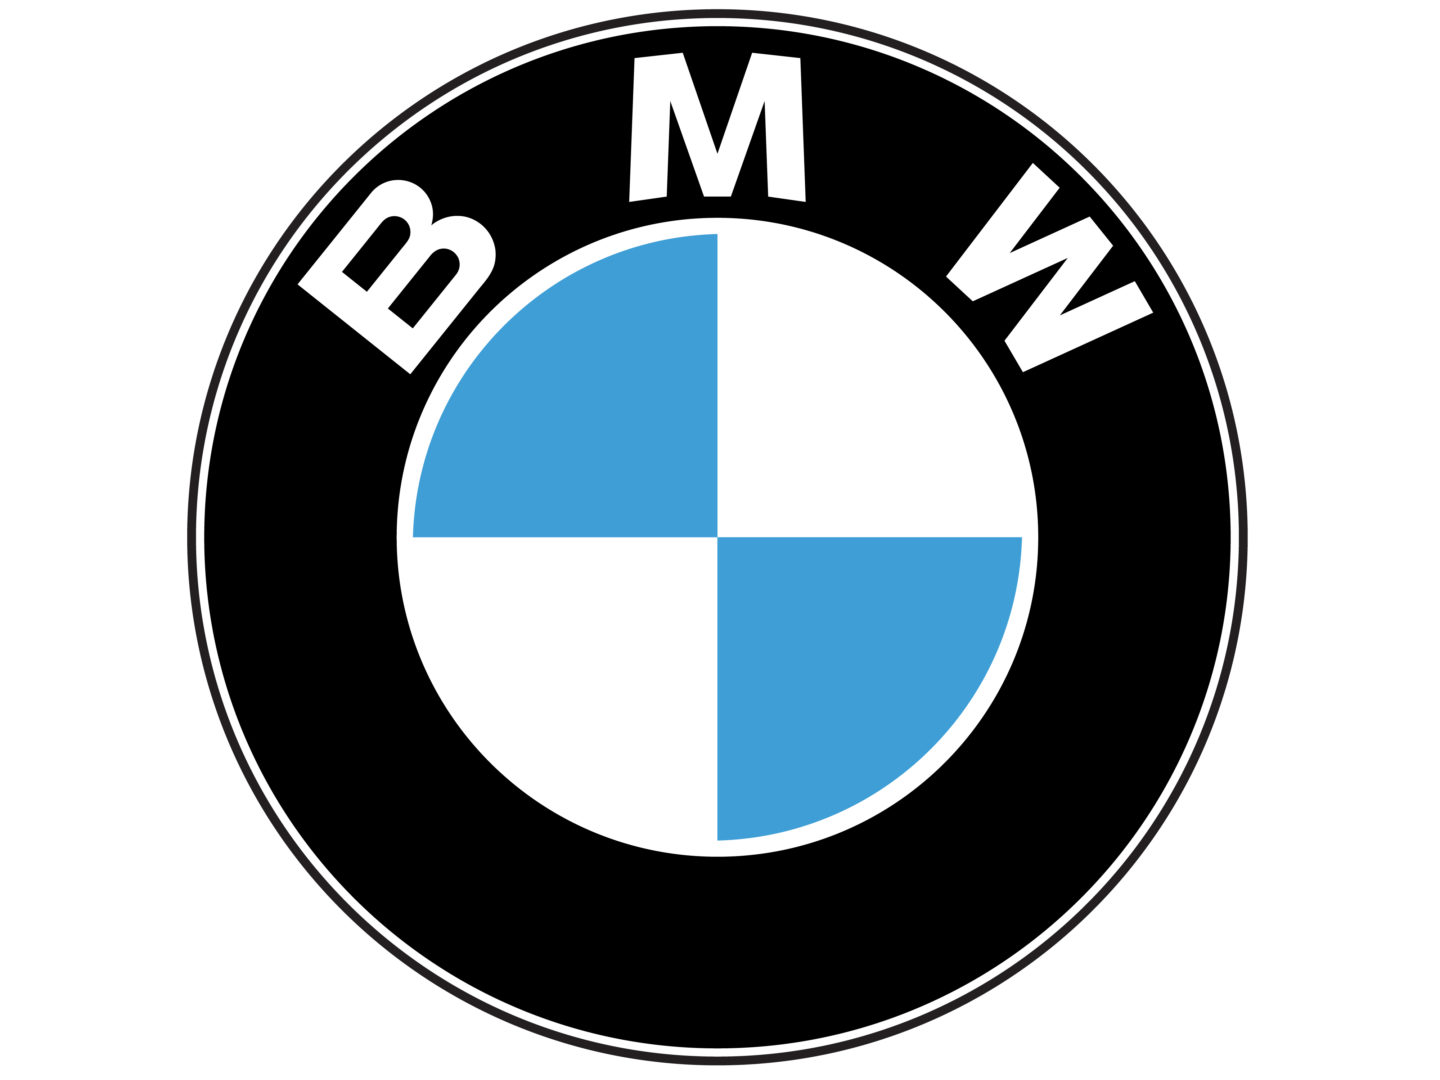 bmw motorcycle logo history and meaning bike emblem. Black Bedroom Furniture Sets. Home Design Ideas